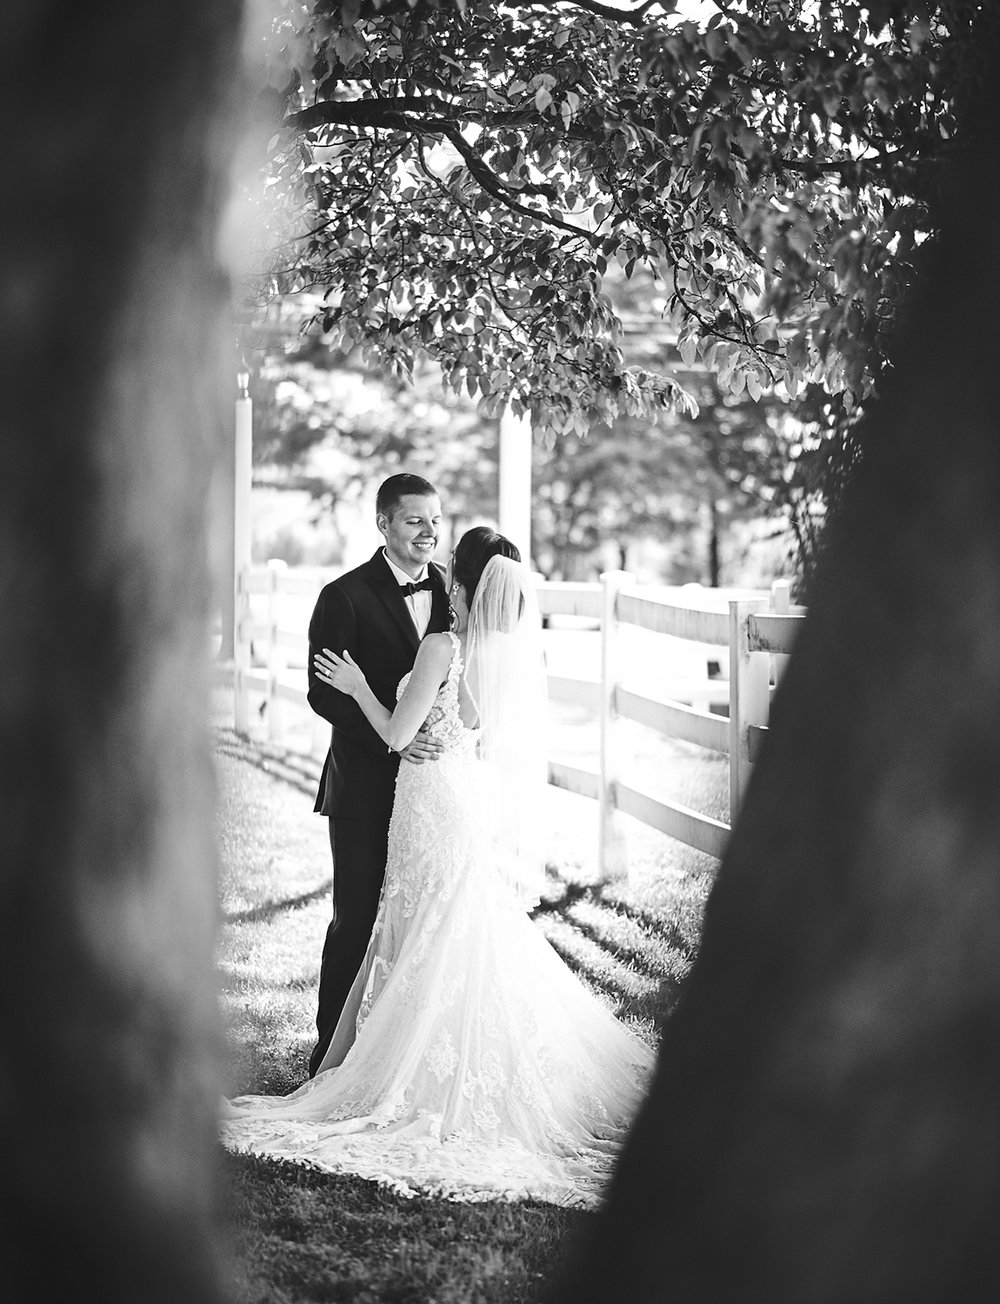 180915_TheRylandInnWeddingPhotography_StylishModernWeddingPhotography_NewJerseyWeddingPhotographer_by_BriJohnsonWeddings_0060.jpg